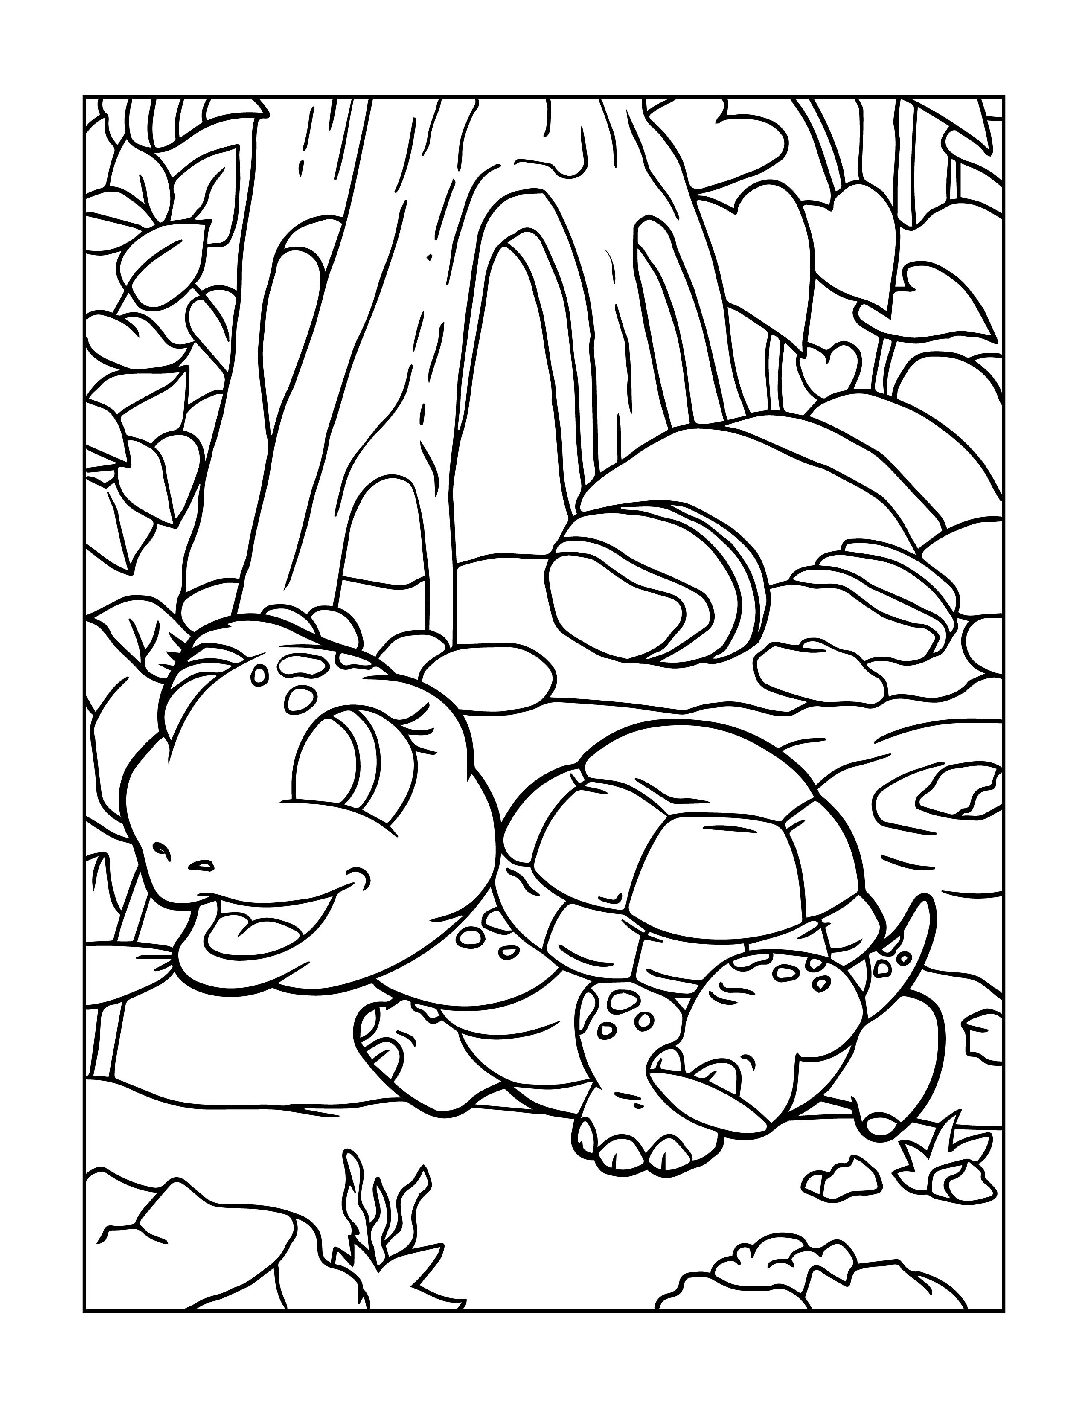 Coloring-Pages-Zoo-Animals-9-01-1-pdf Free Printable  Zoo Animals Colouring Pages